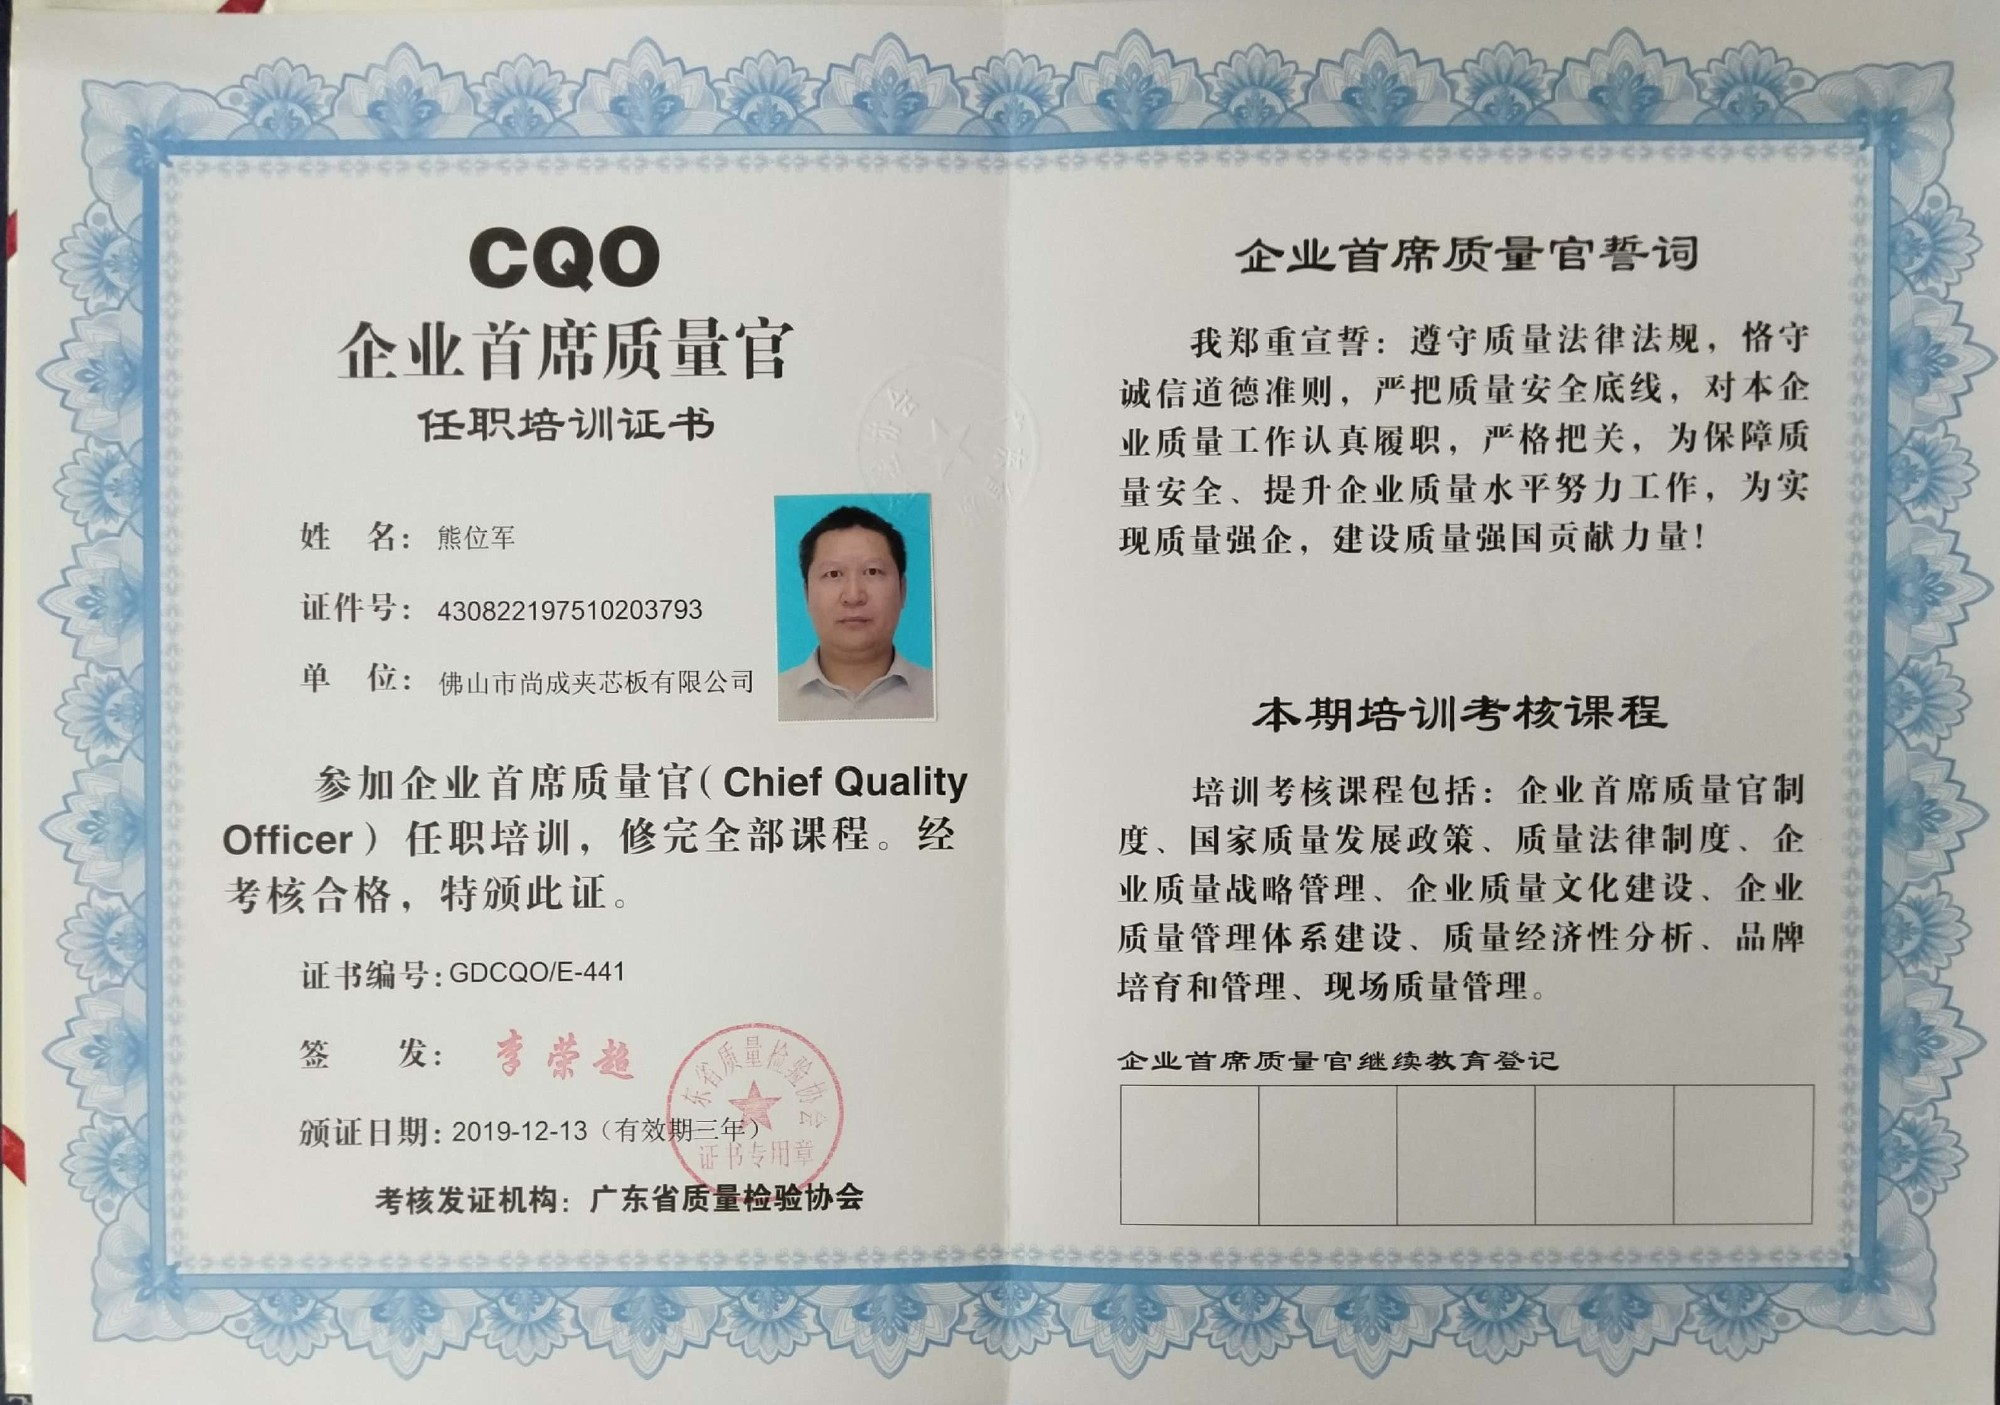 Chief Quality Officer